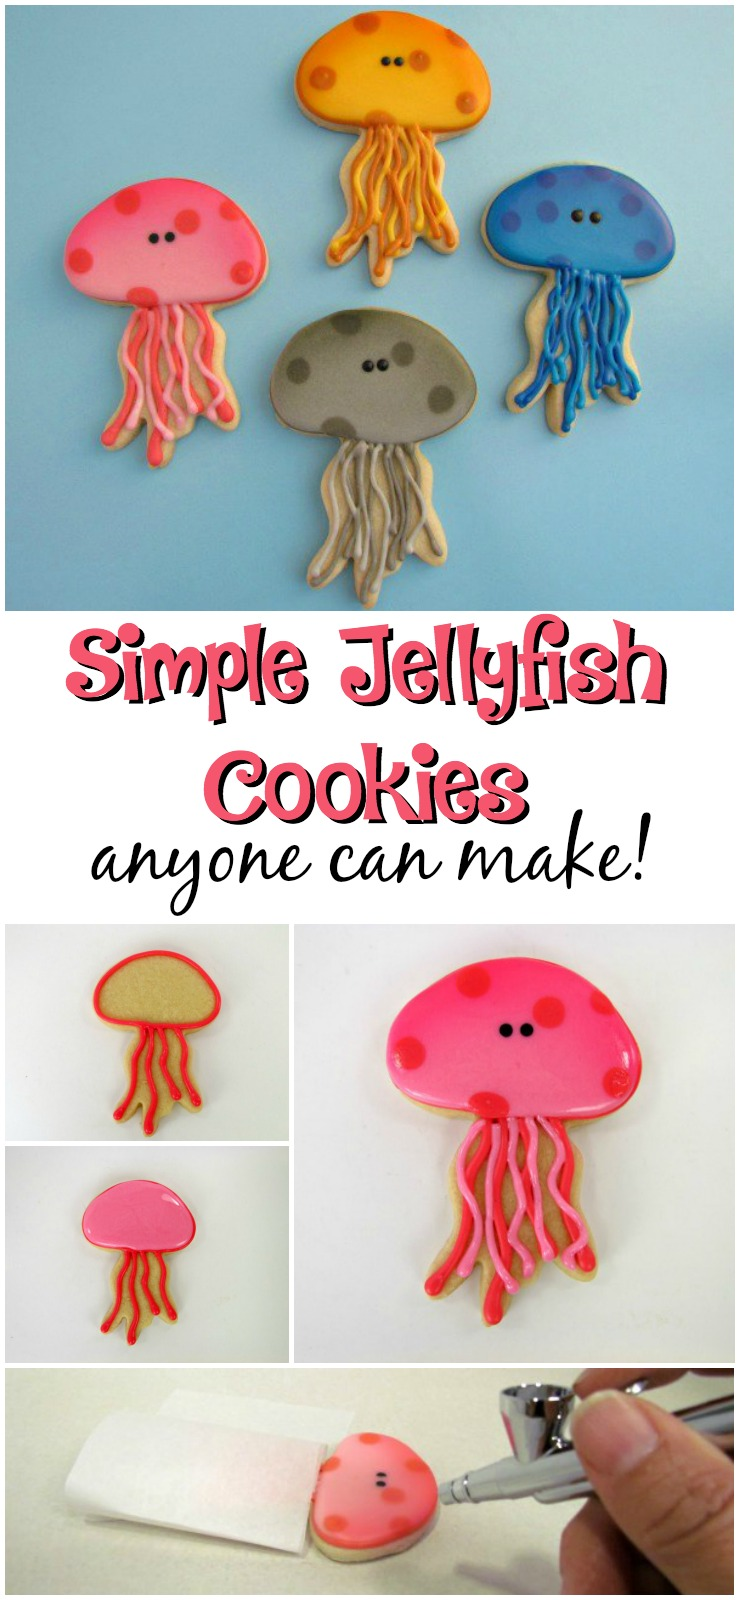 Simple Jellyfish Cookies anyone Can Make via www.thebearfootbaker.com